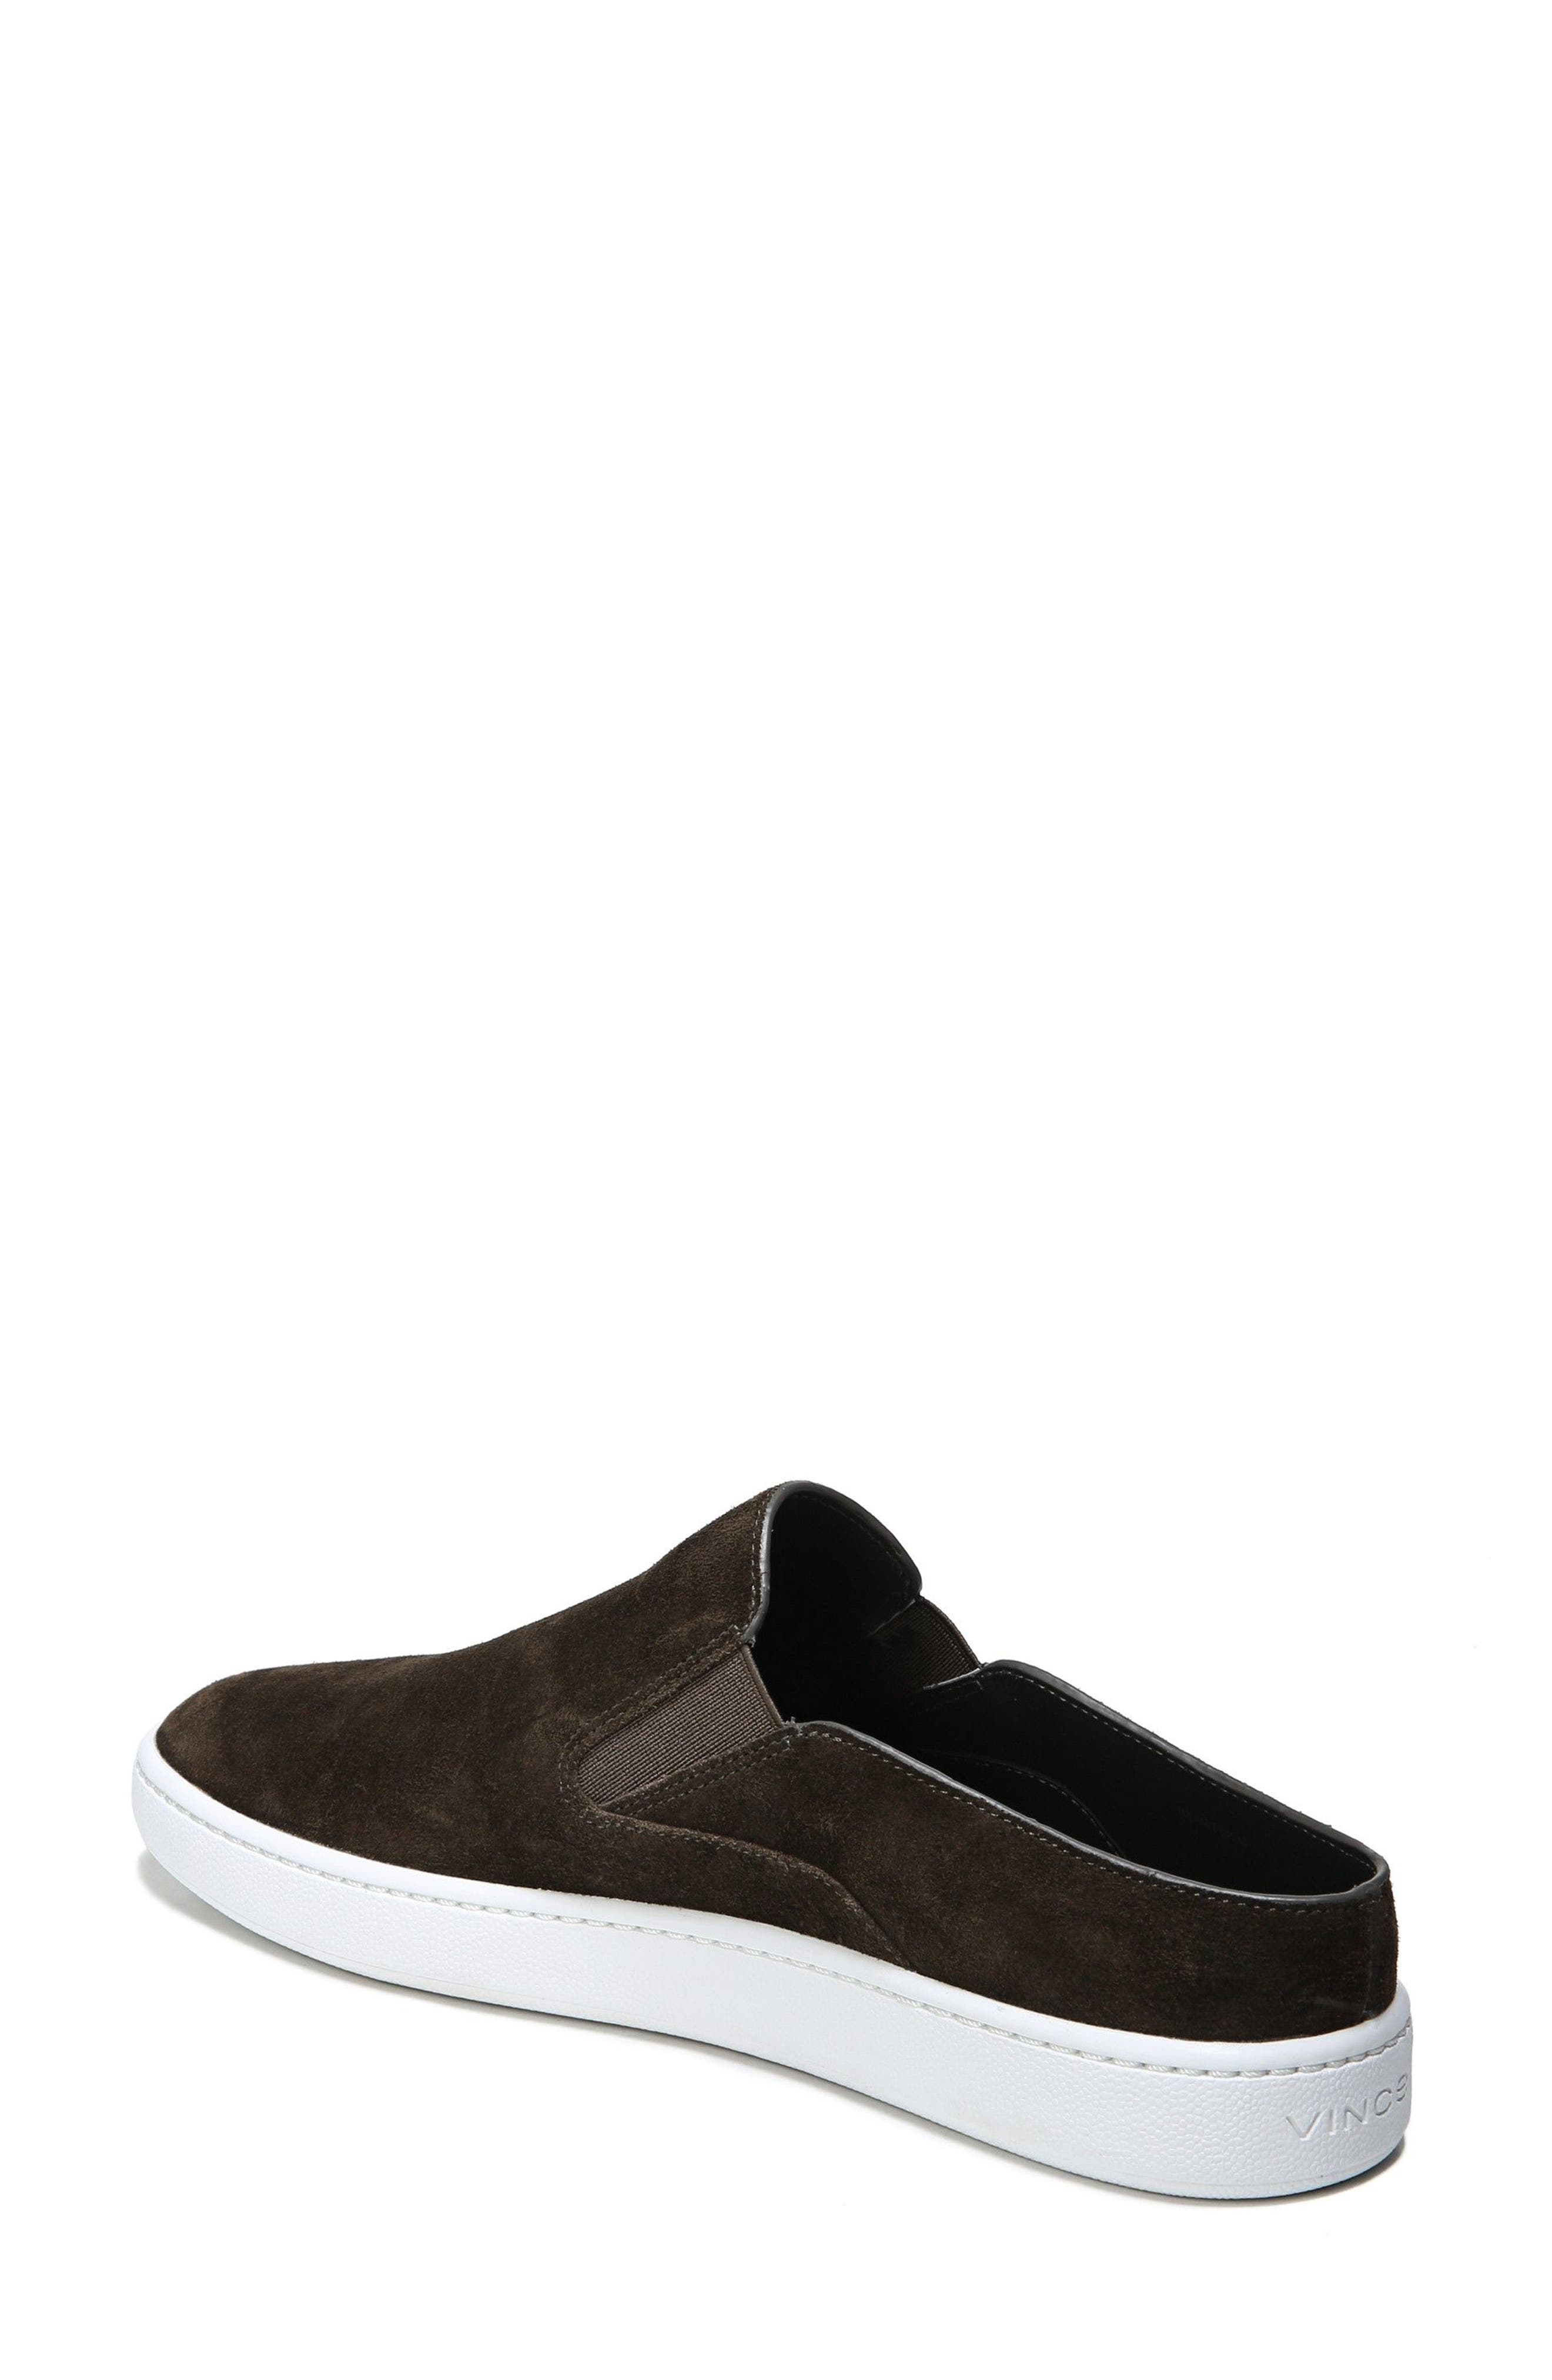 Alternate Image 2  - Vince Verrell Slip-On Sneaker (Women)